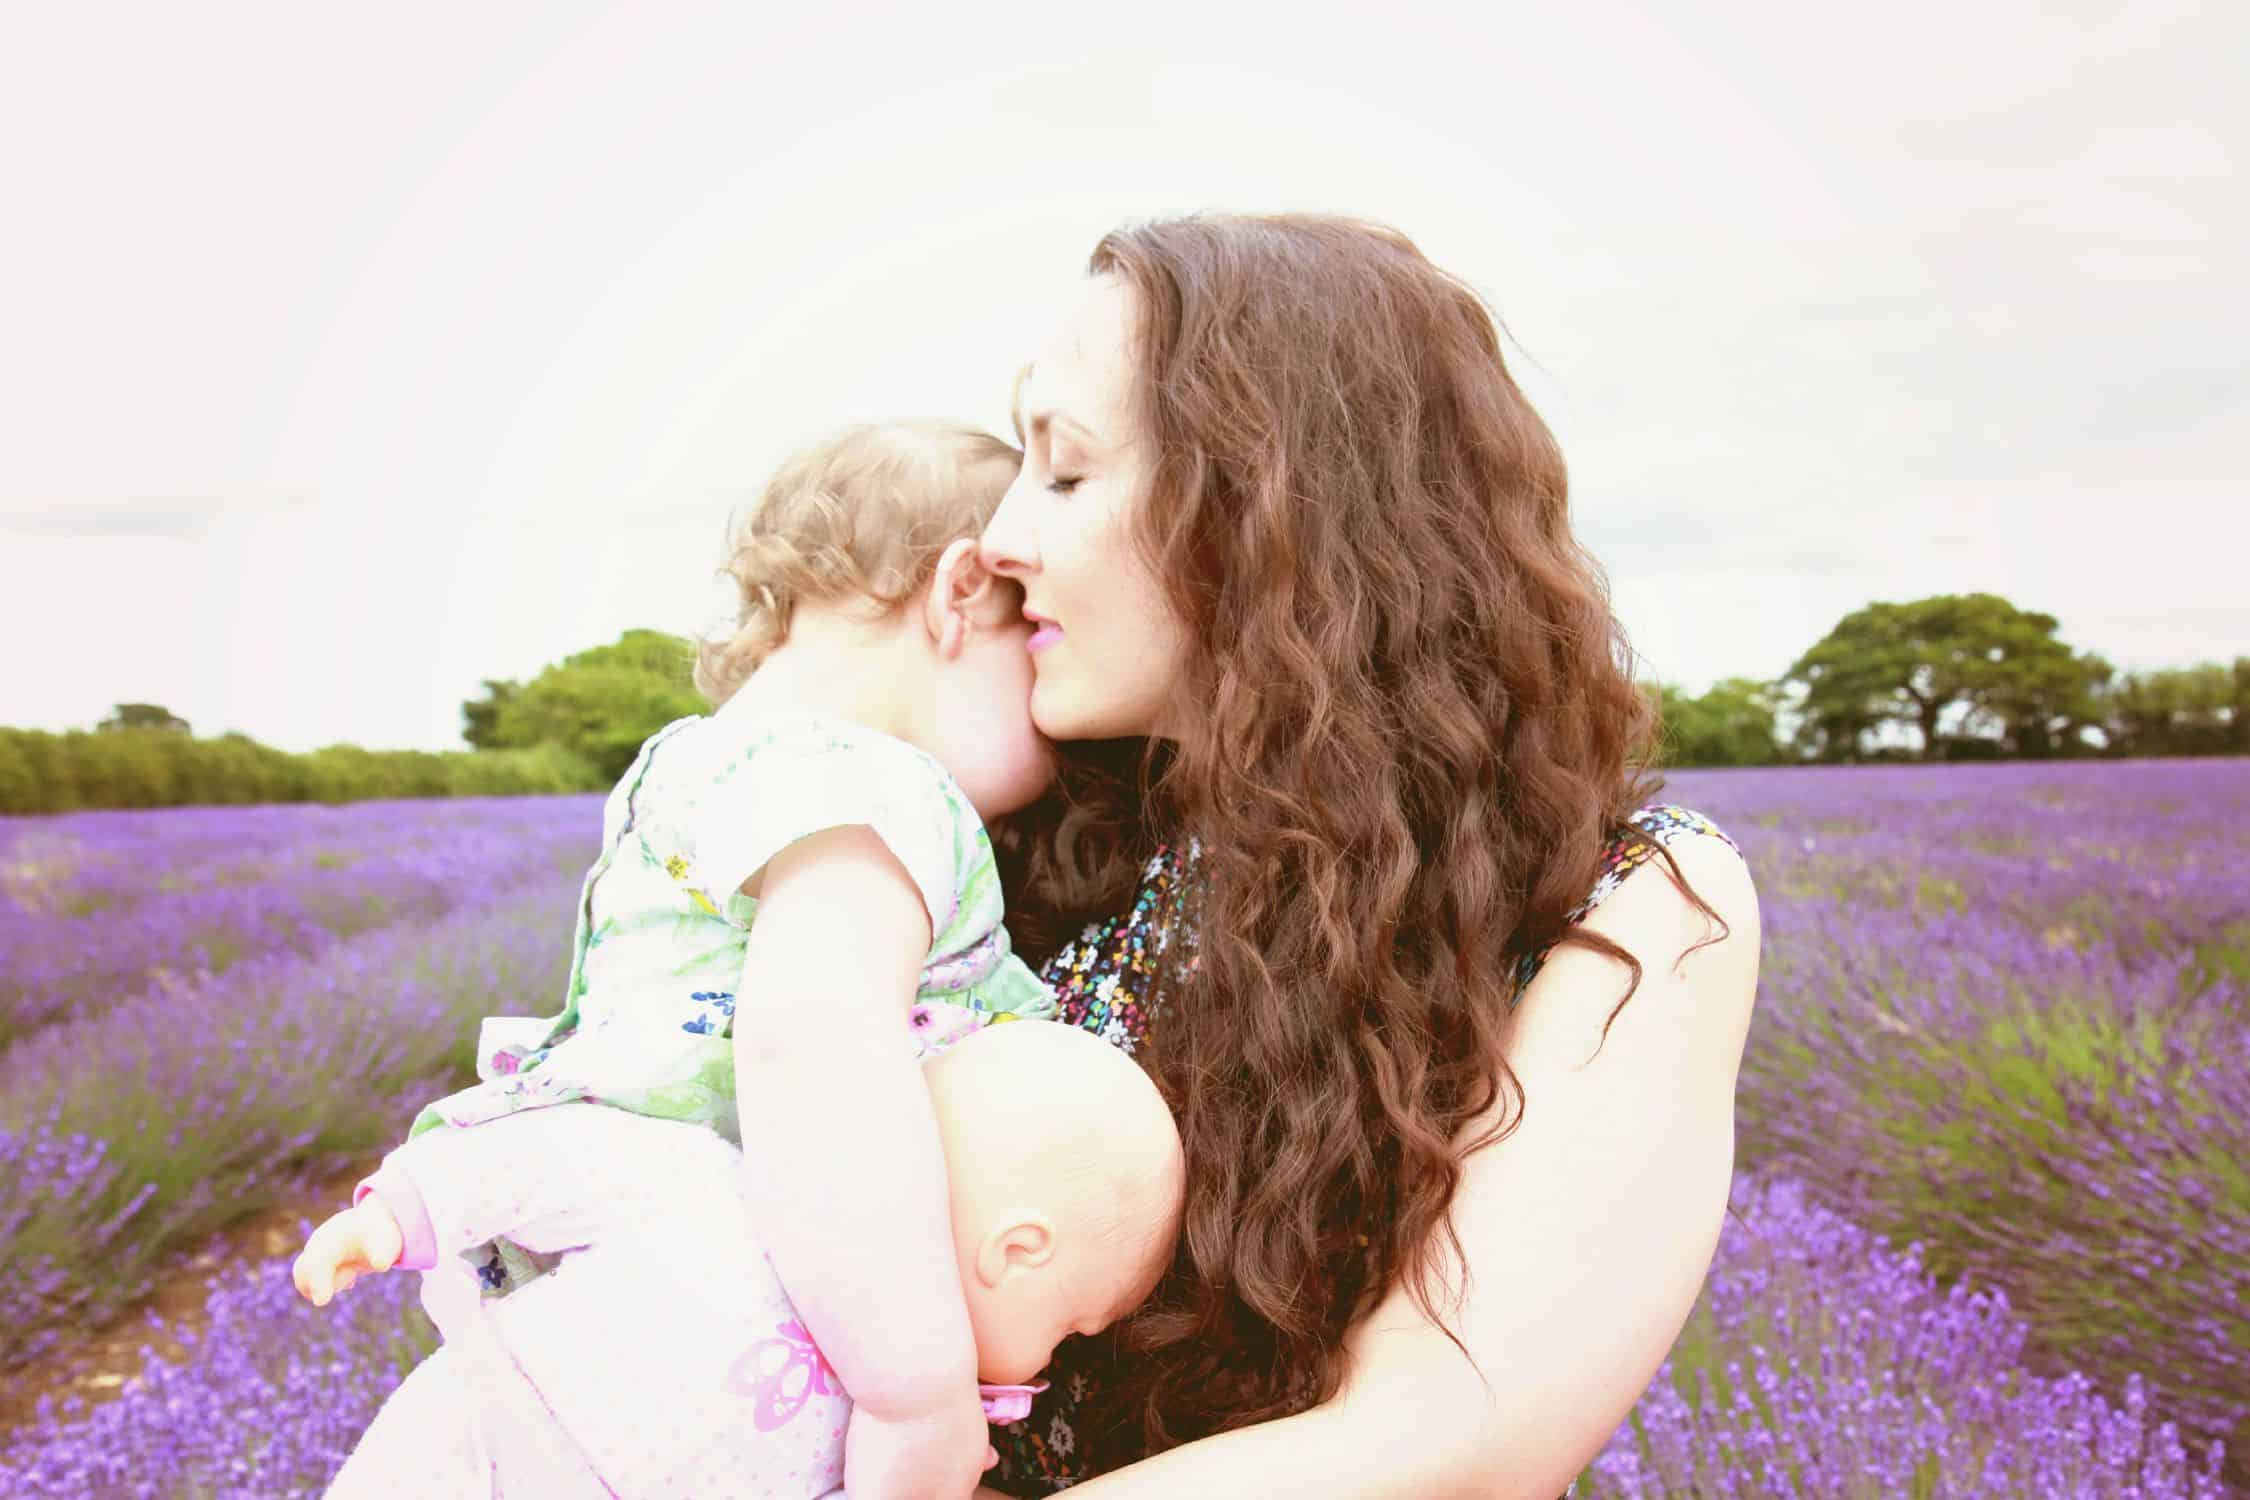 An image of a gentle mother holding a child in a field full of lavender.